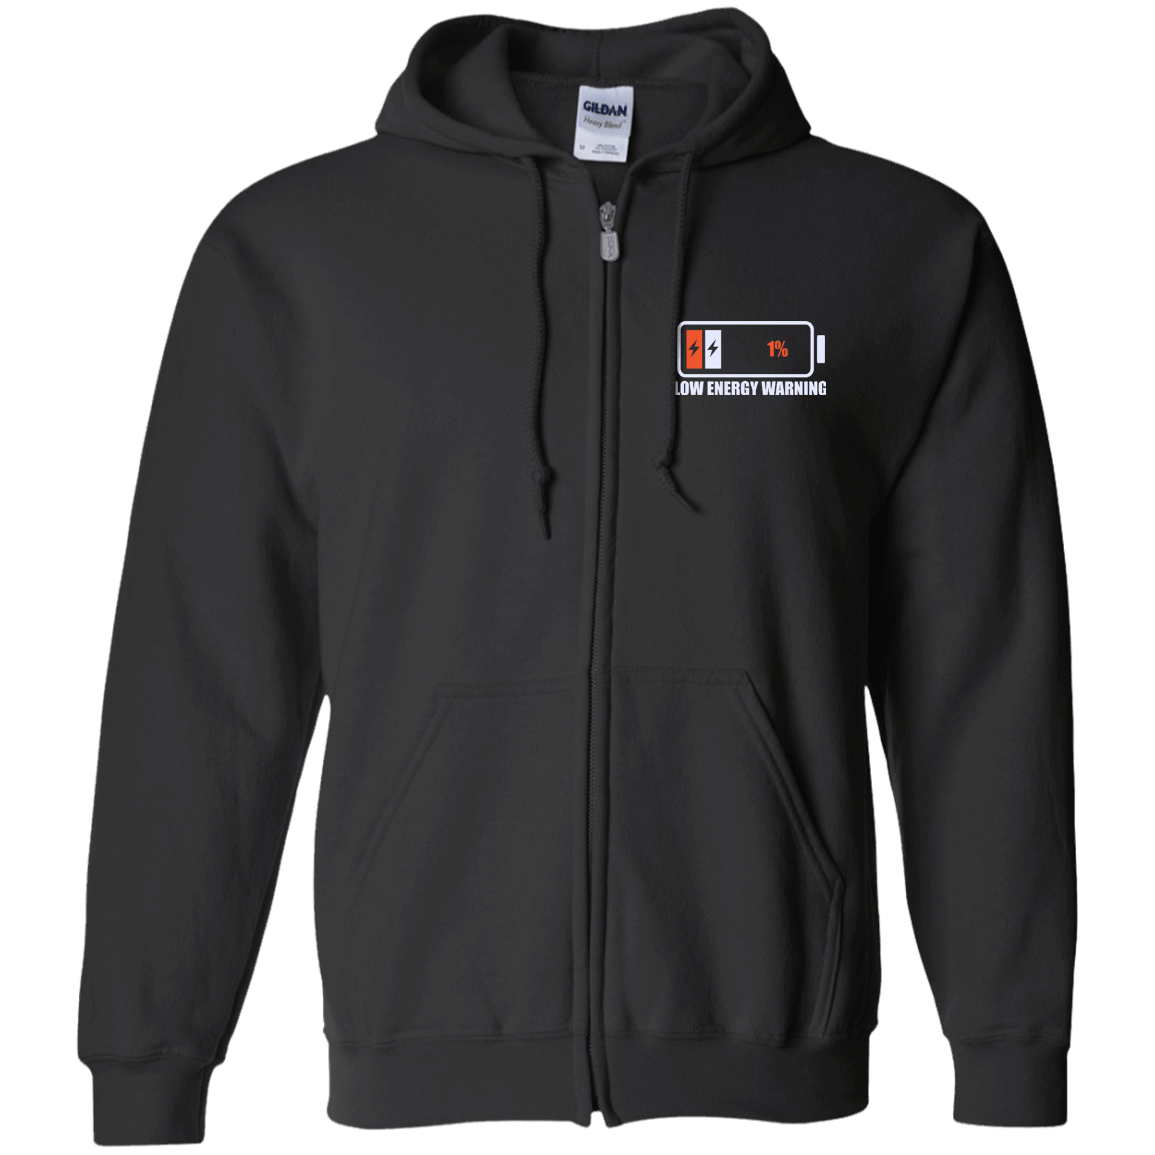 Low Energy Warning Zip Up Hooded Sweatshirt - The Unchargeables